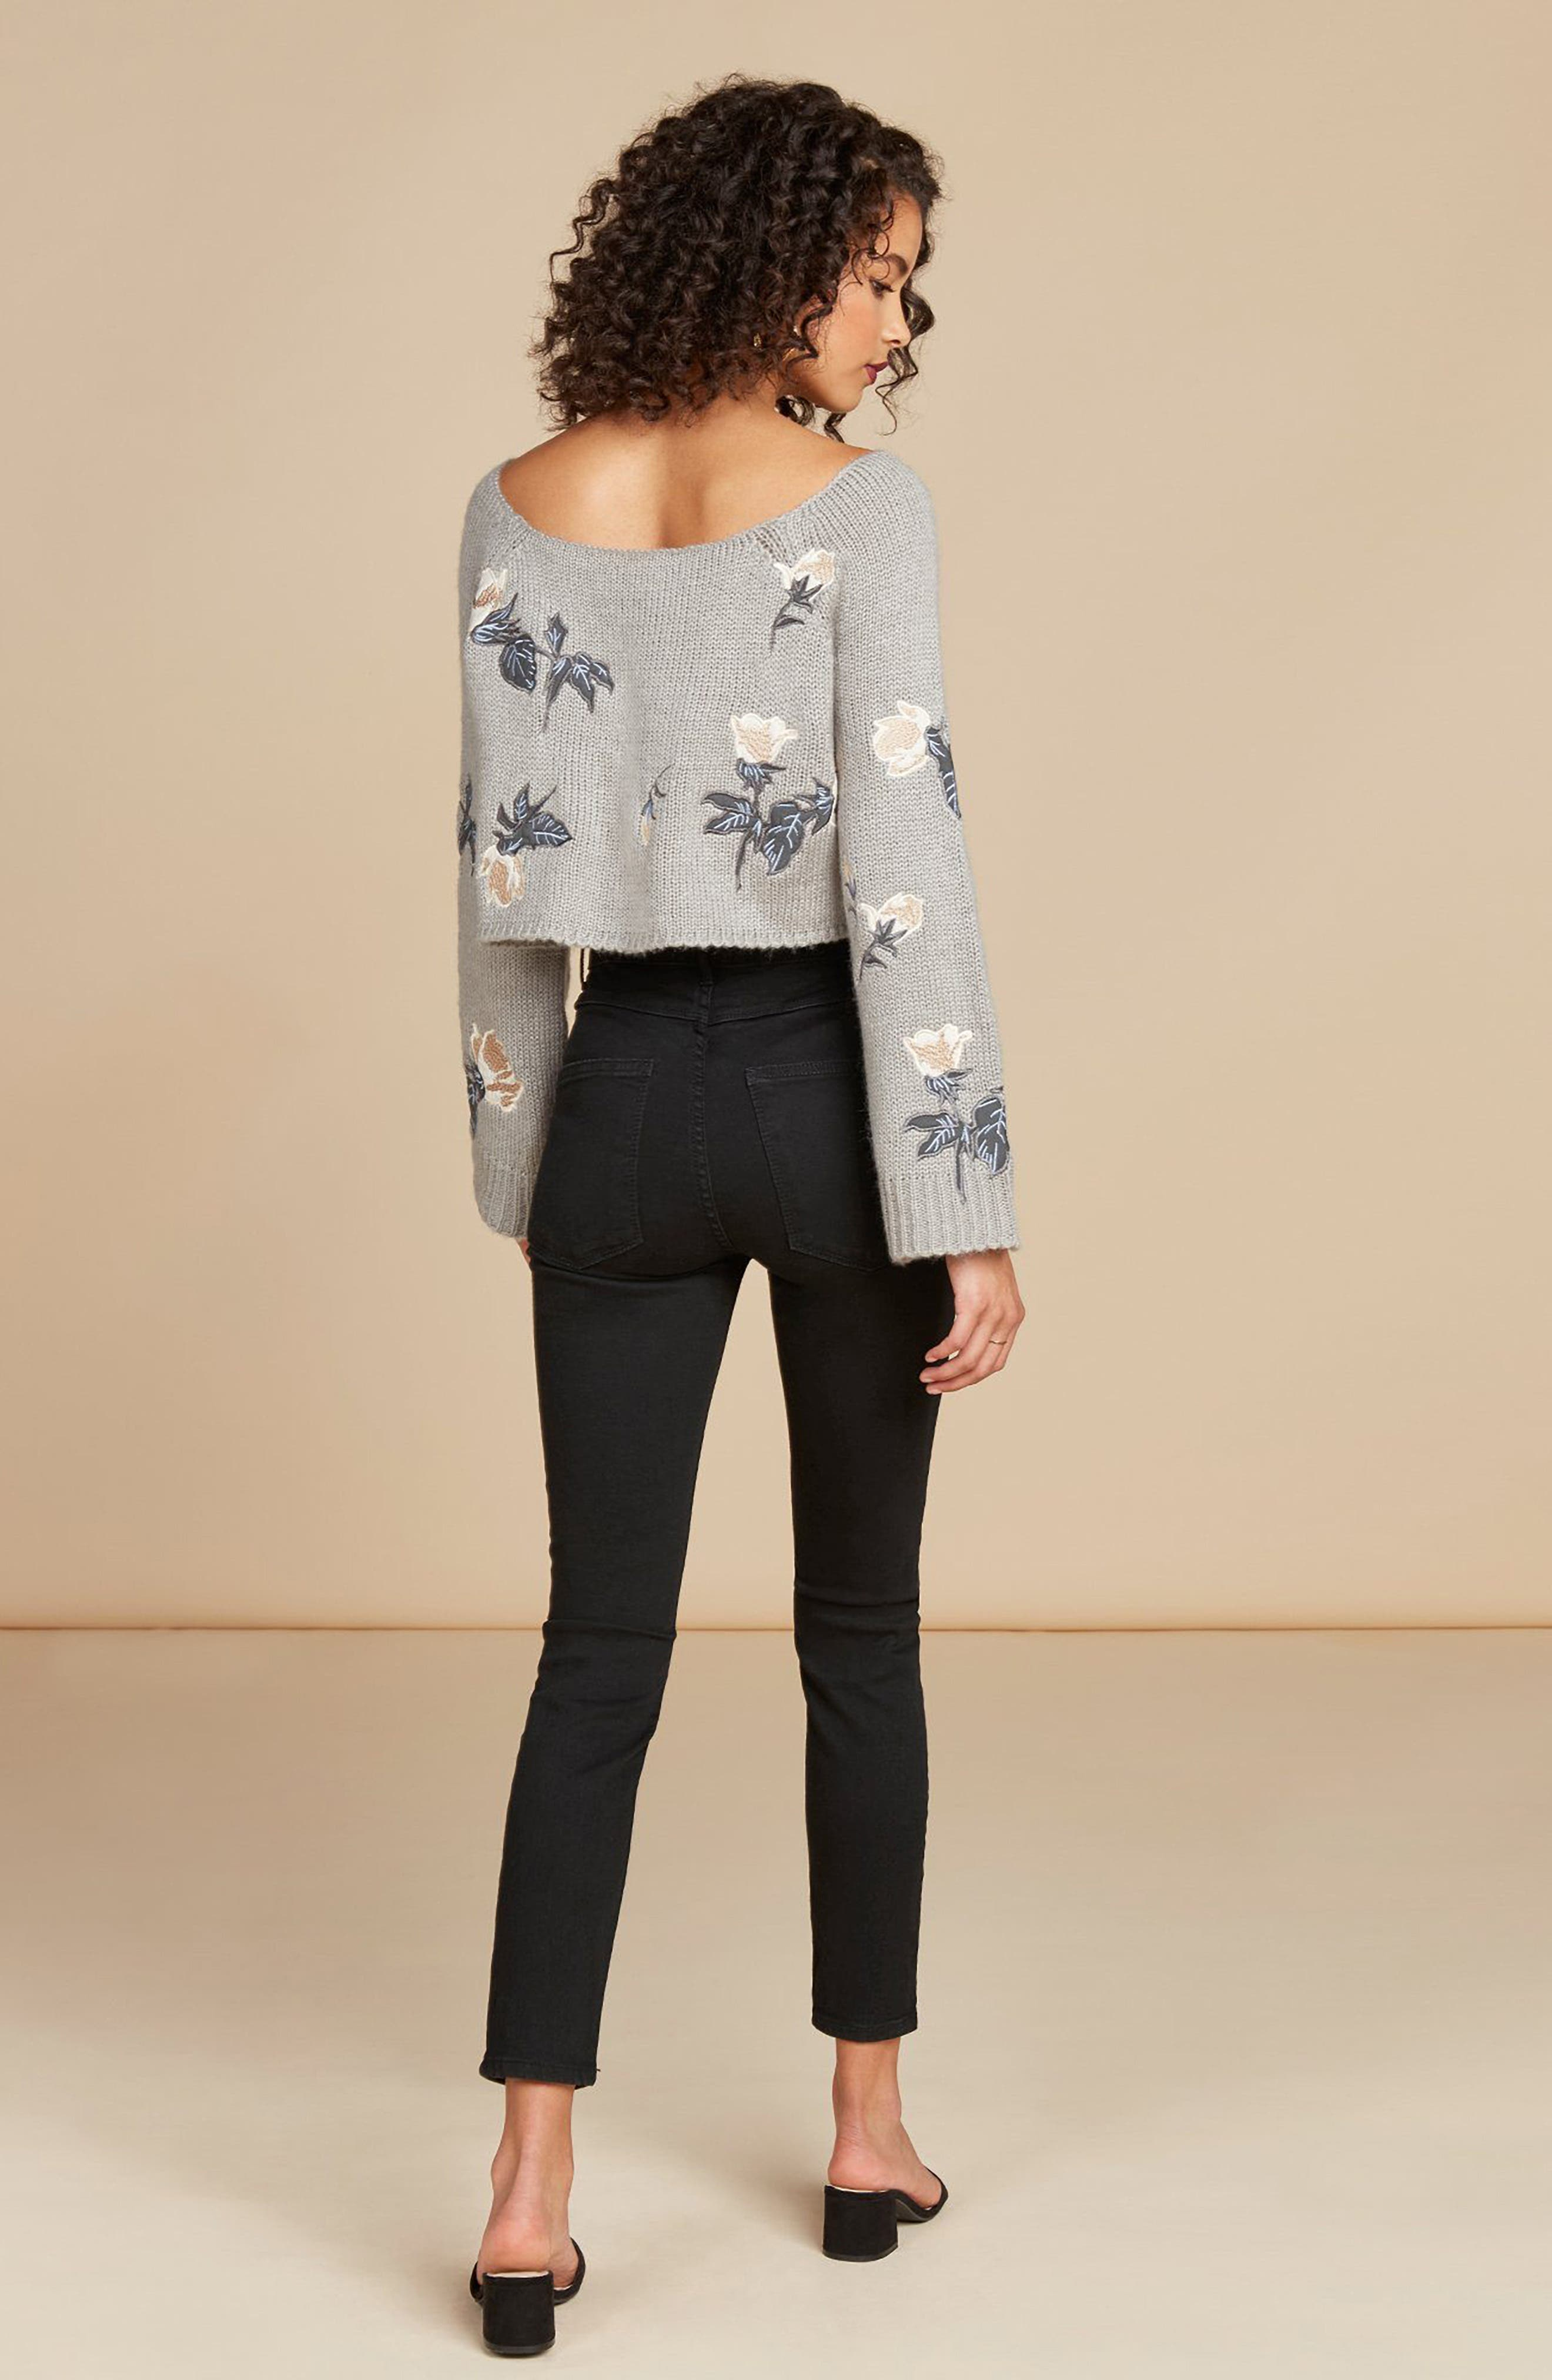 Floral Detail Bell Sleeve Crop Sweater,                             Alternate thumbnail 8, color,                             060